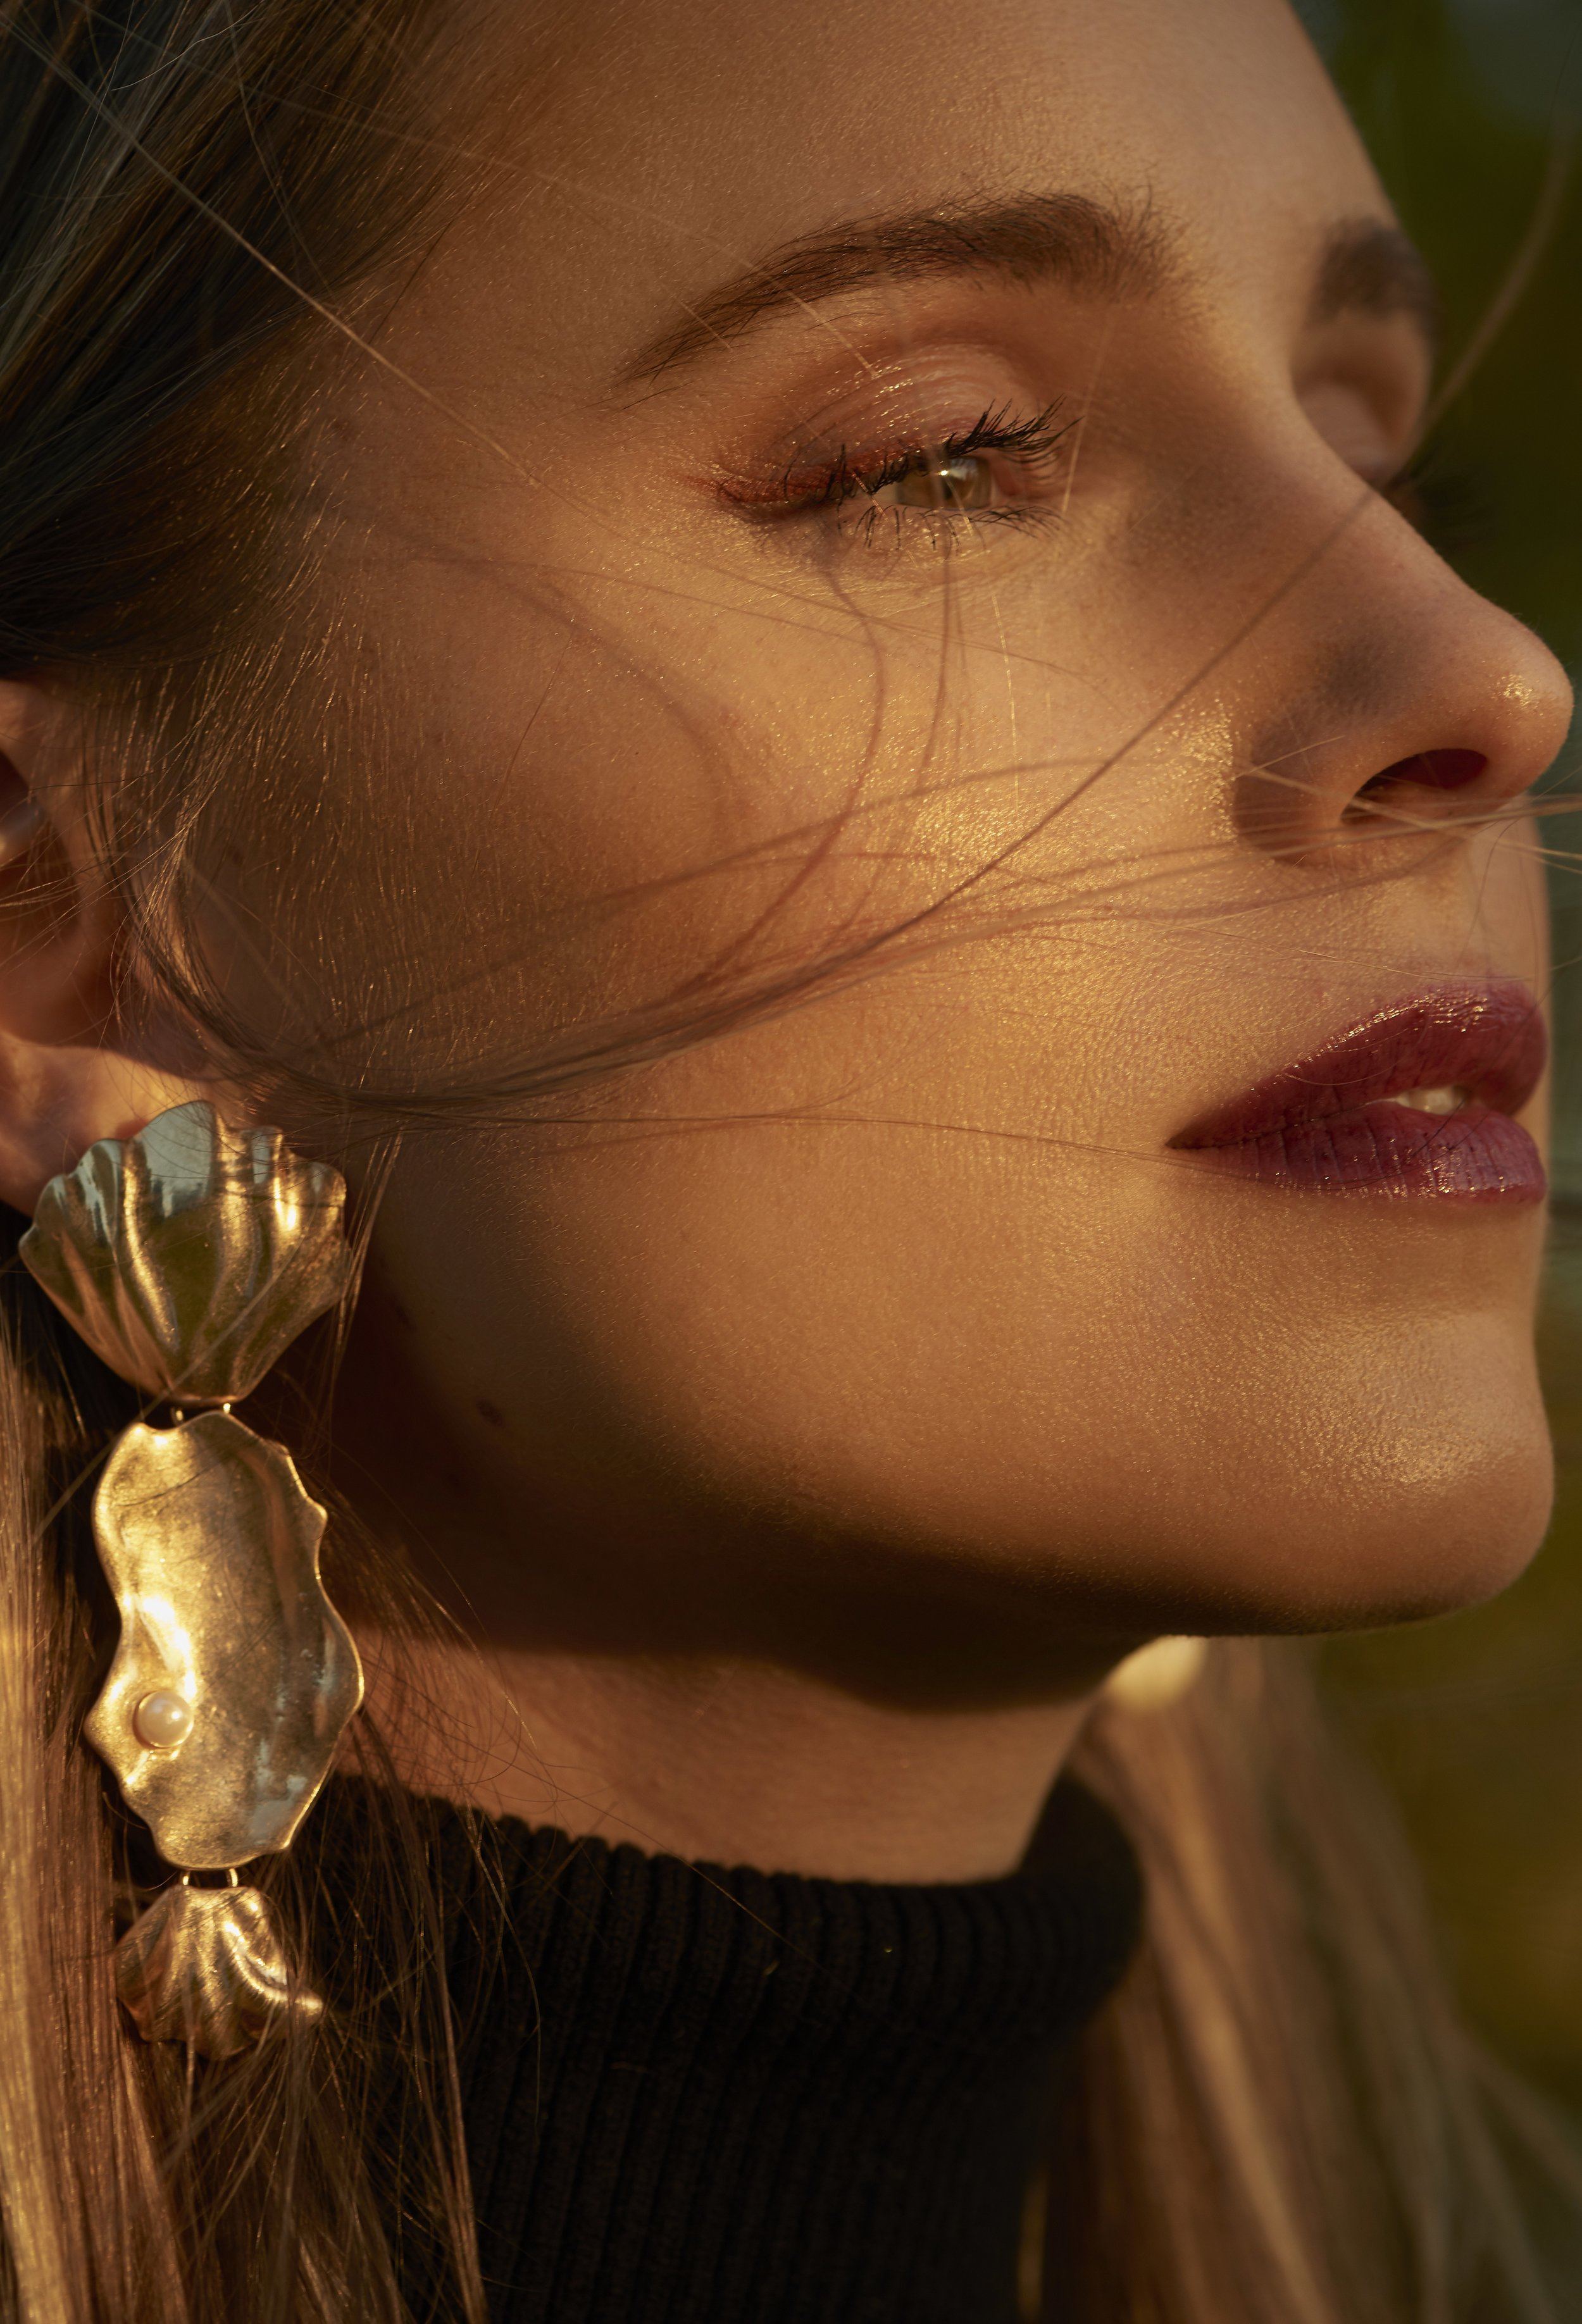 Make up close up and statement earrings